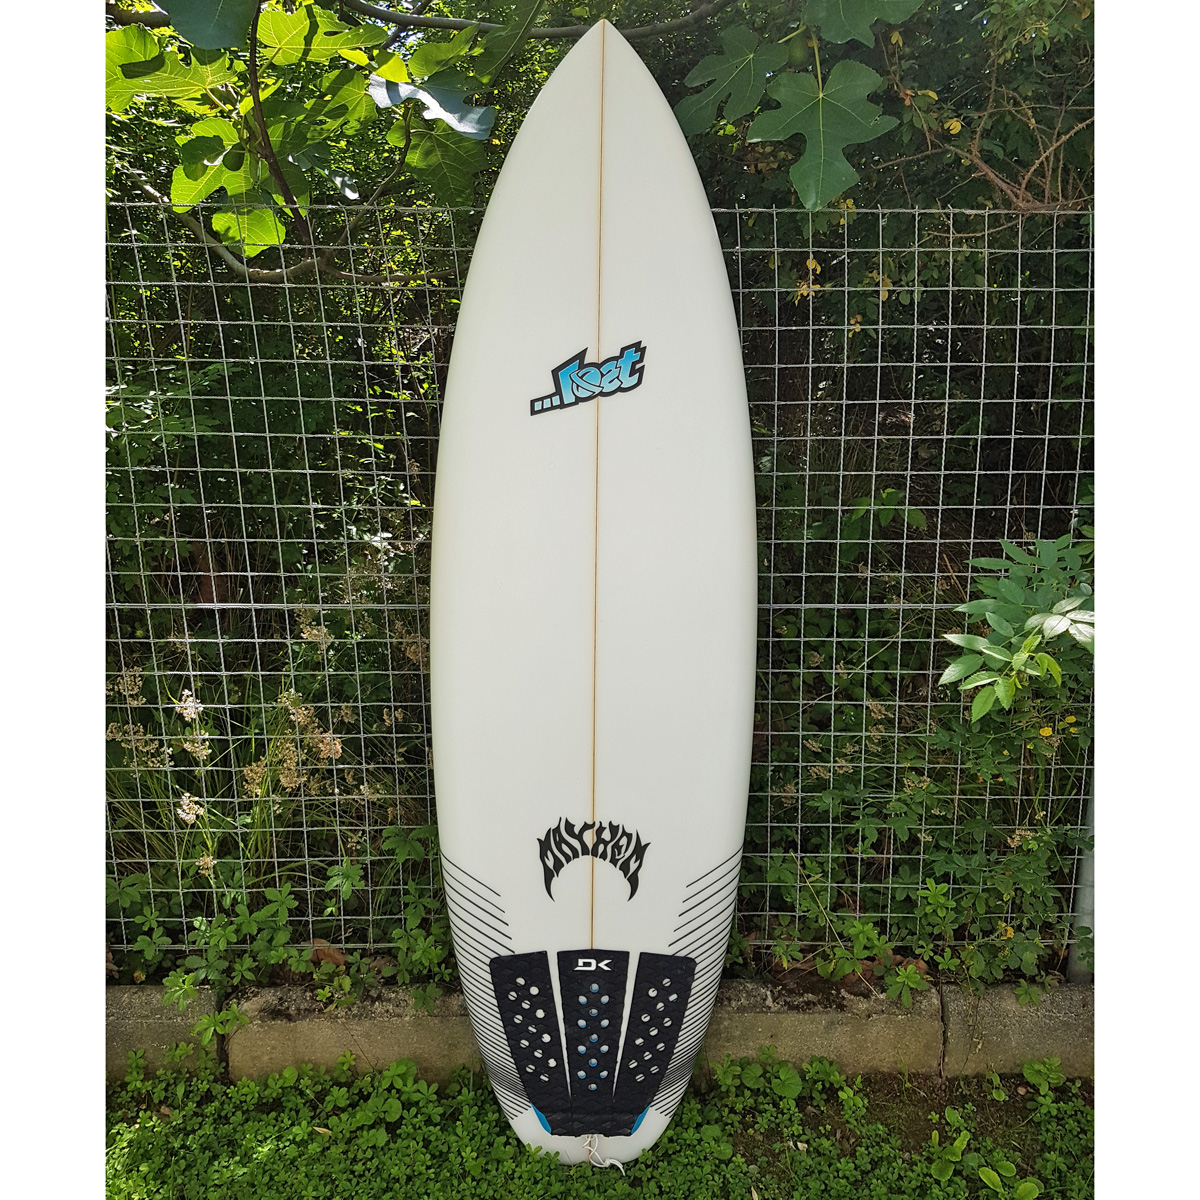 Lost Puddle Jumper HP Surfboard